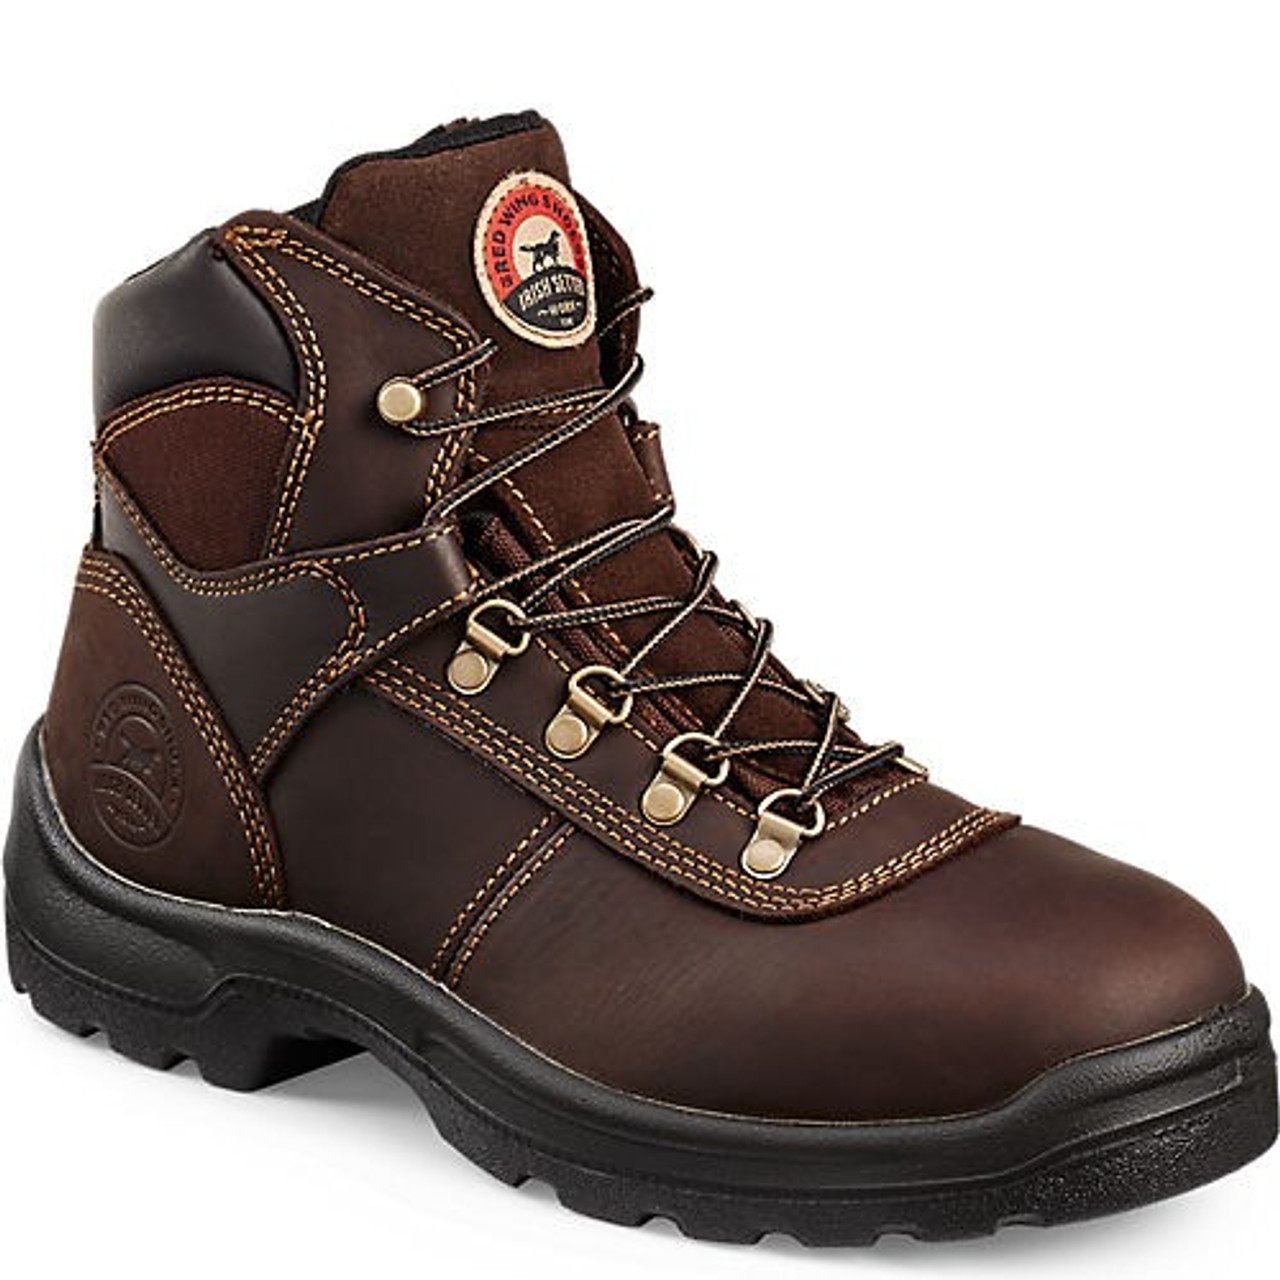 85cb5025ad9 Irish Setter By Red Wing Boots - The Ely